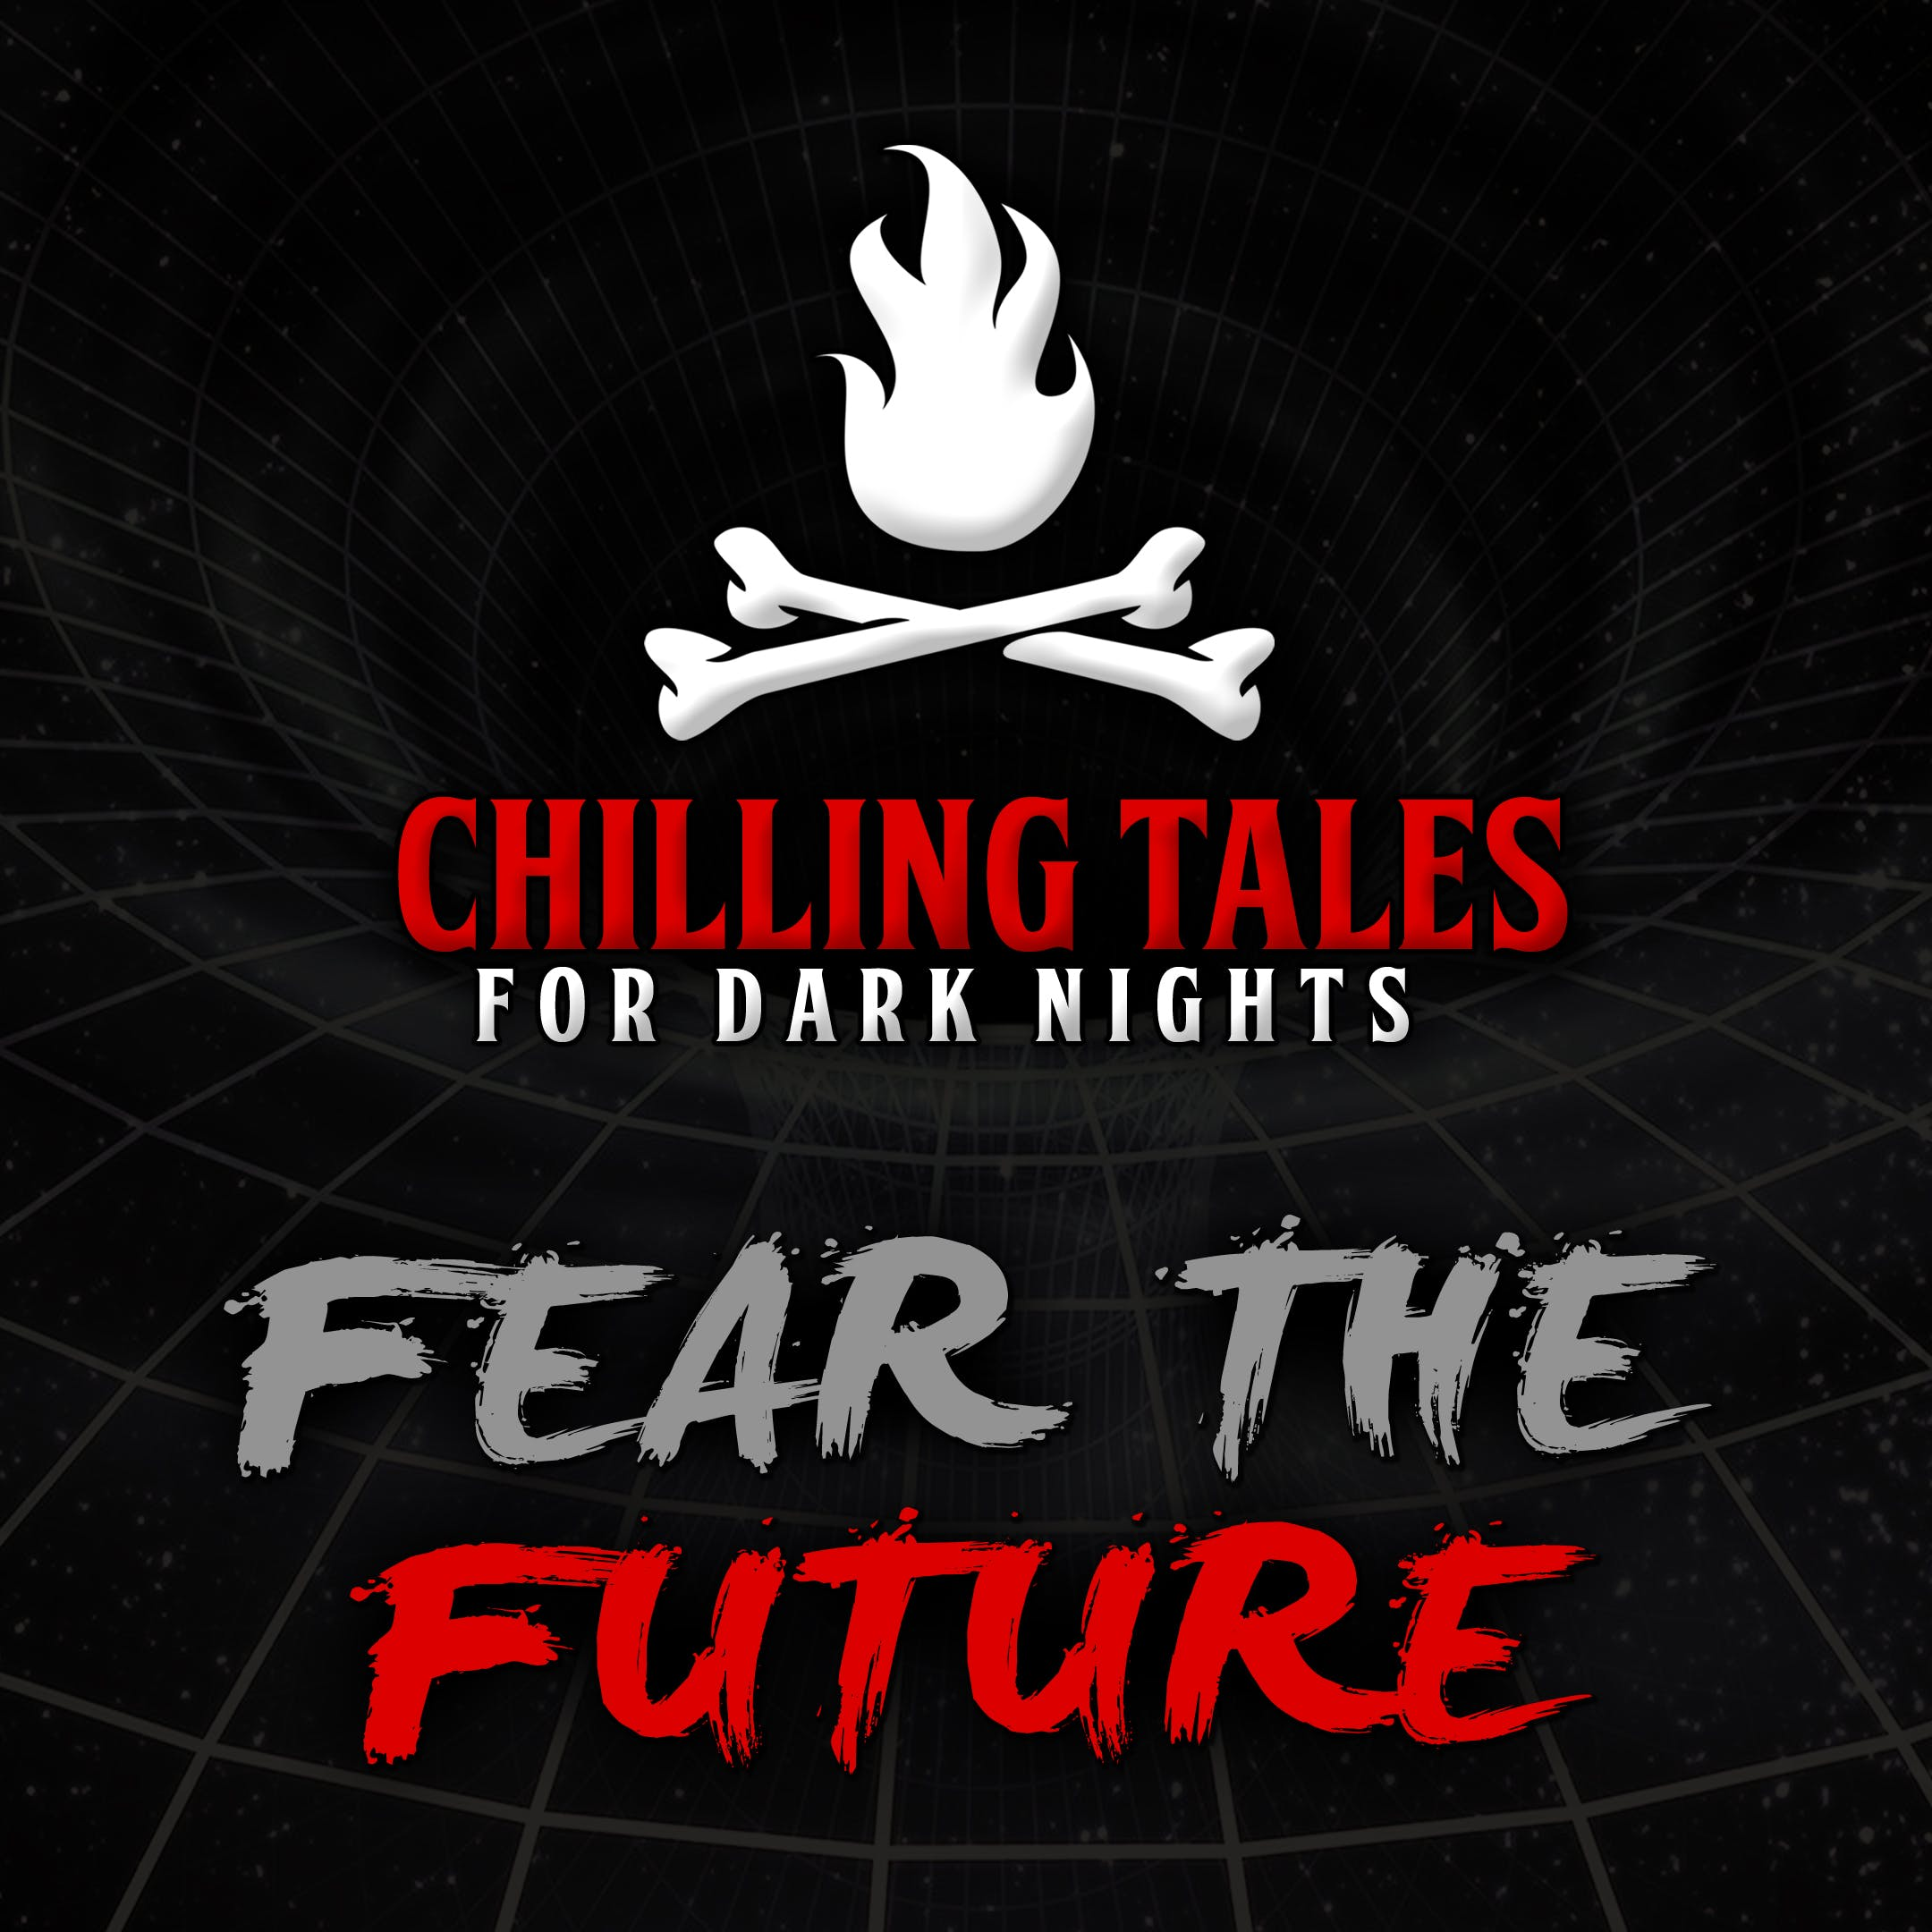 88: Fear the Future – Chilling Tales for Dark Nights